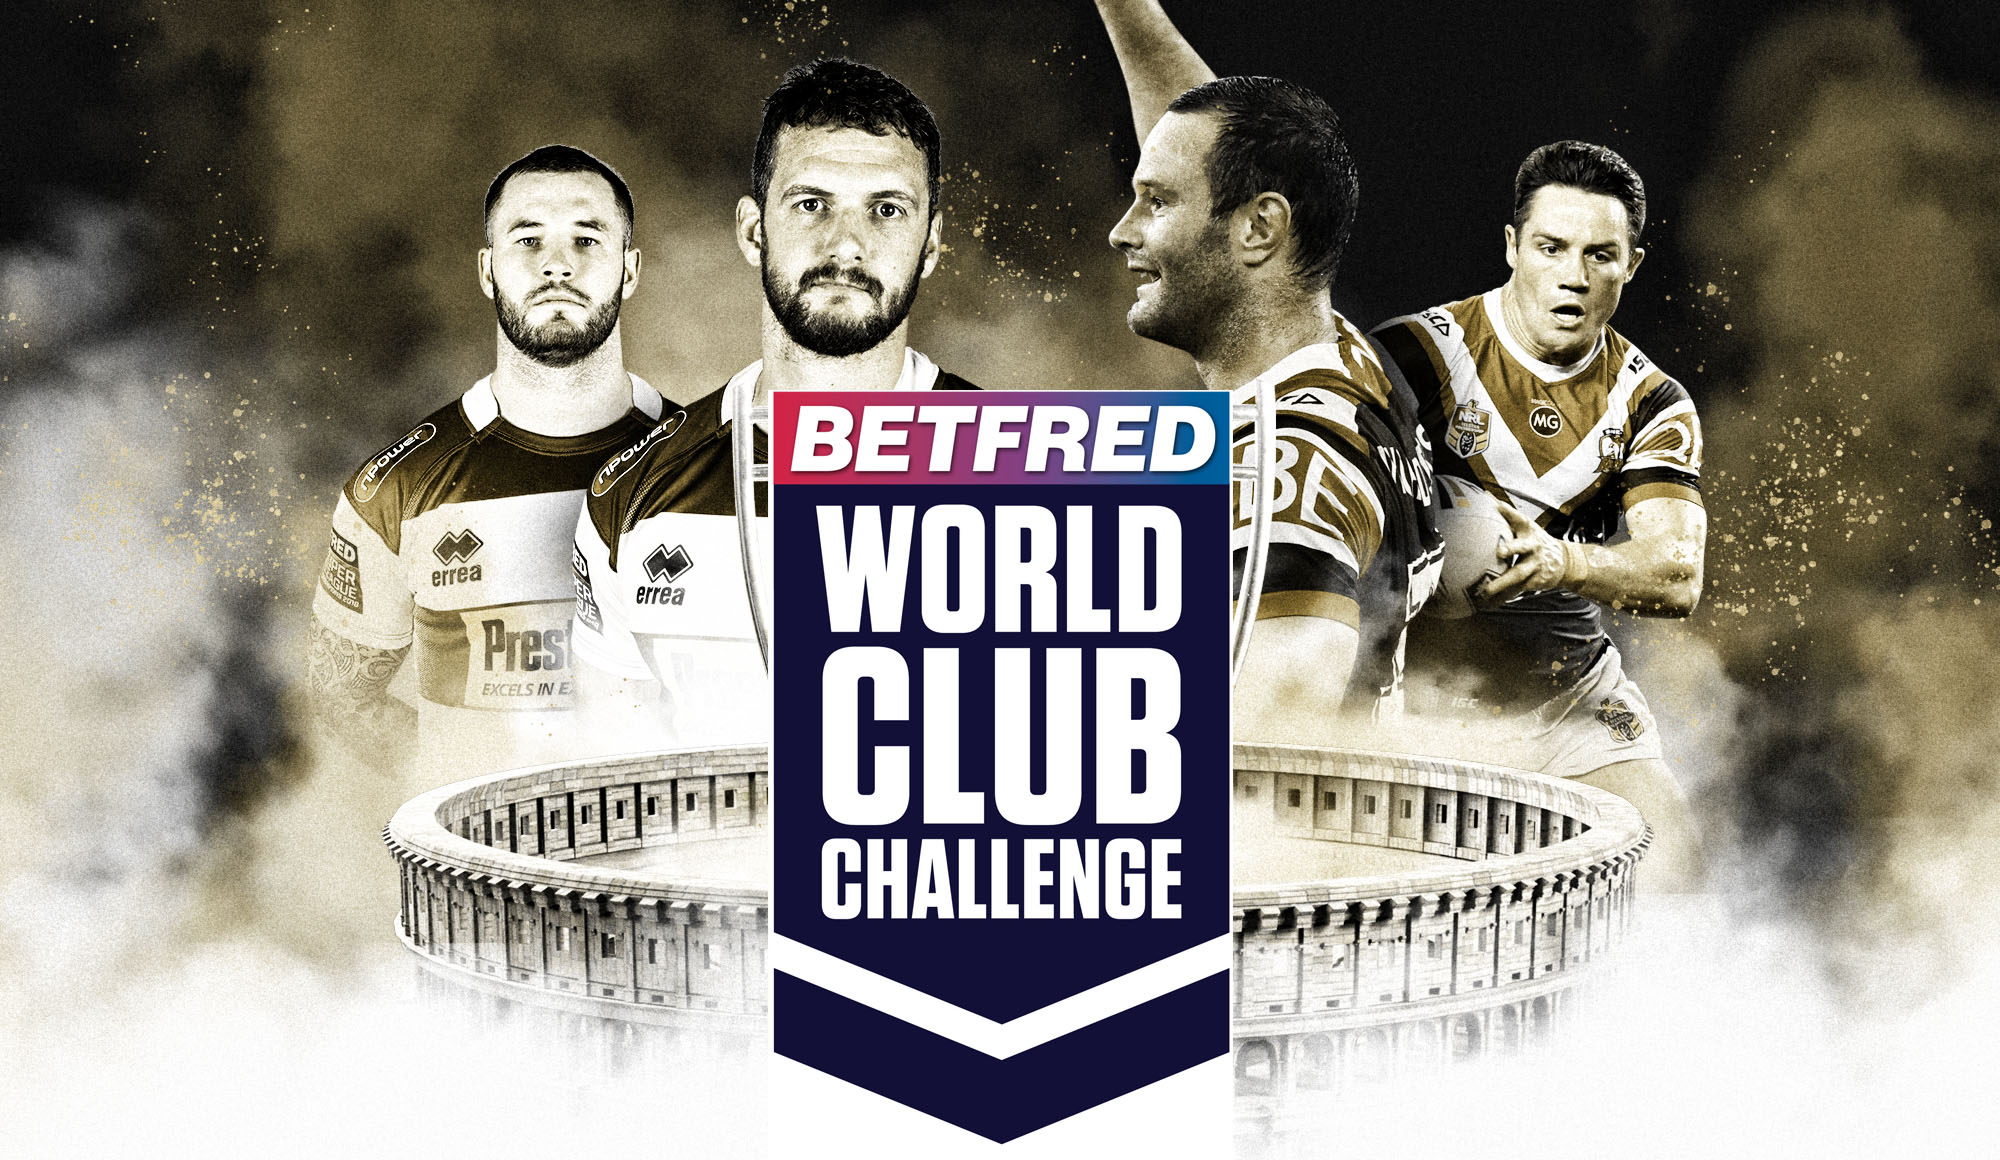 Betfred to back World Club Challenge